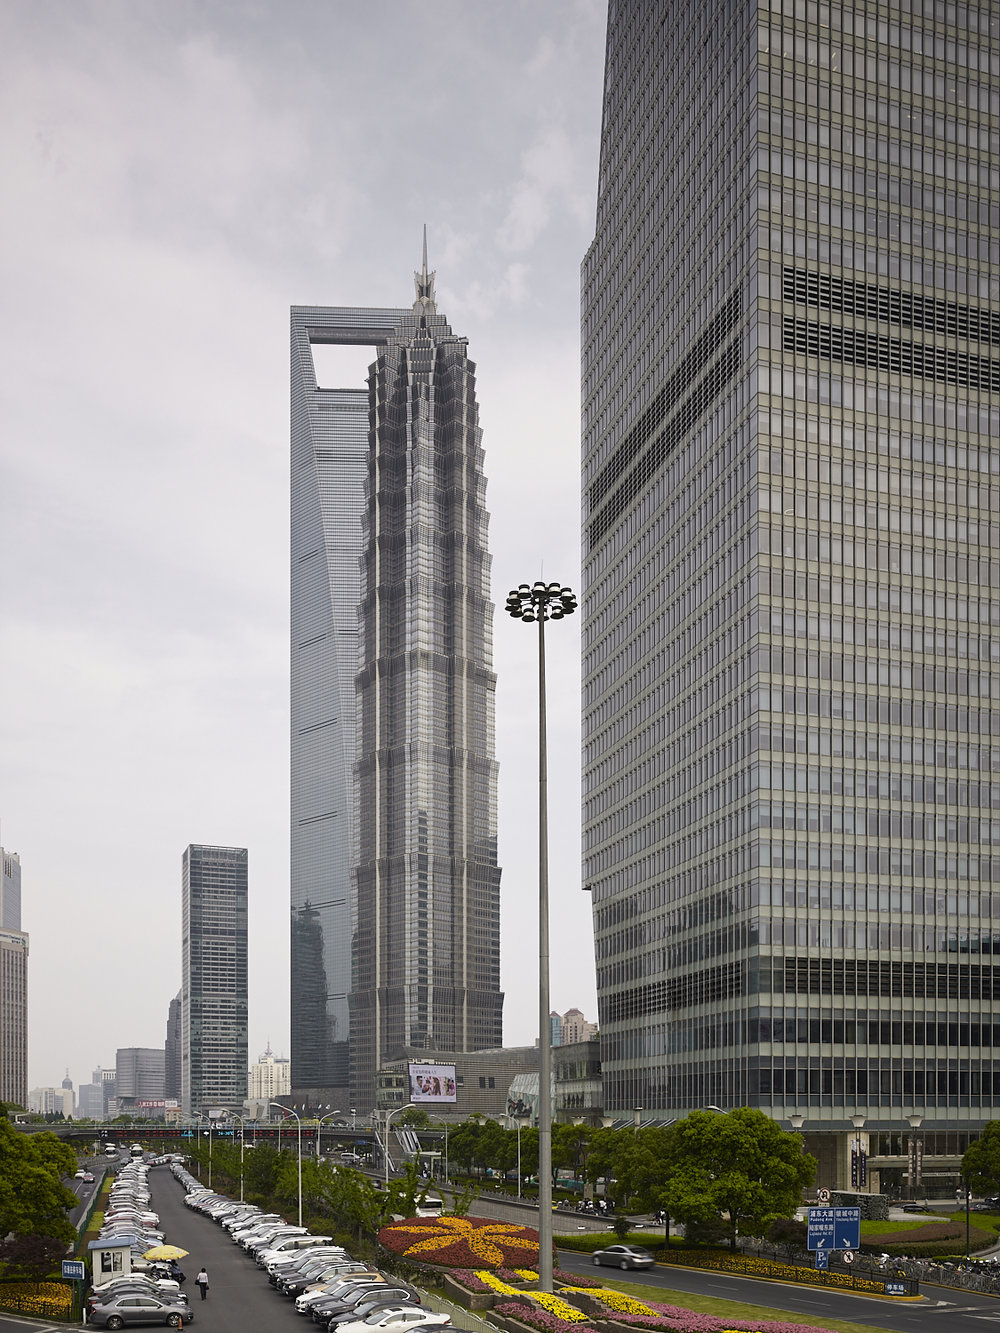 Pudong buildings and parking space, Shanghai, China, 2017